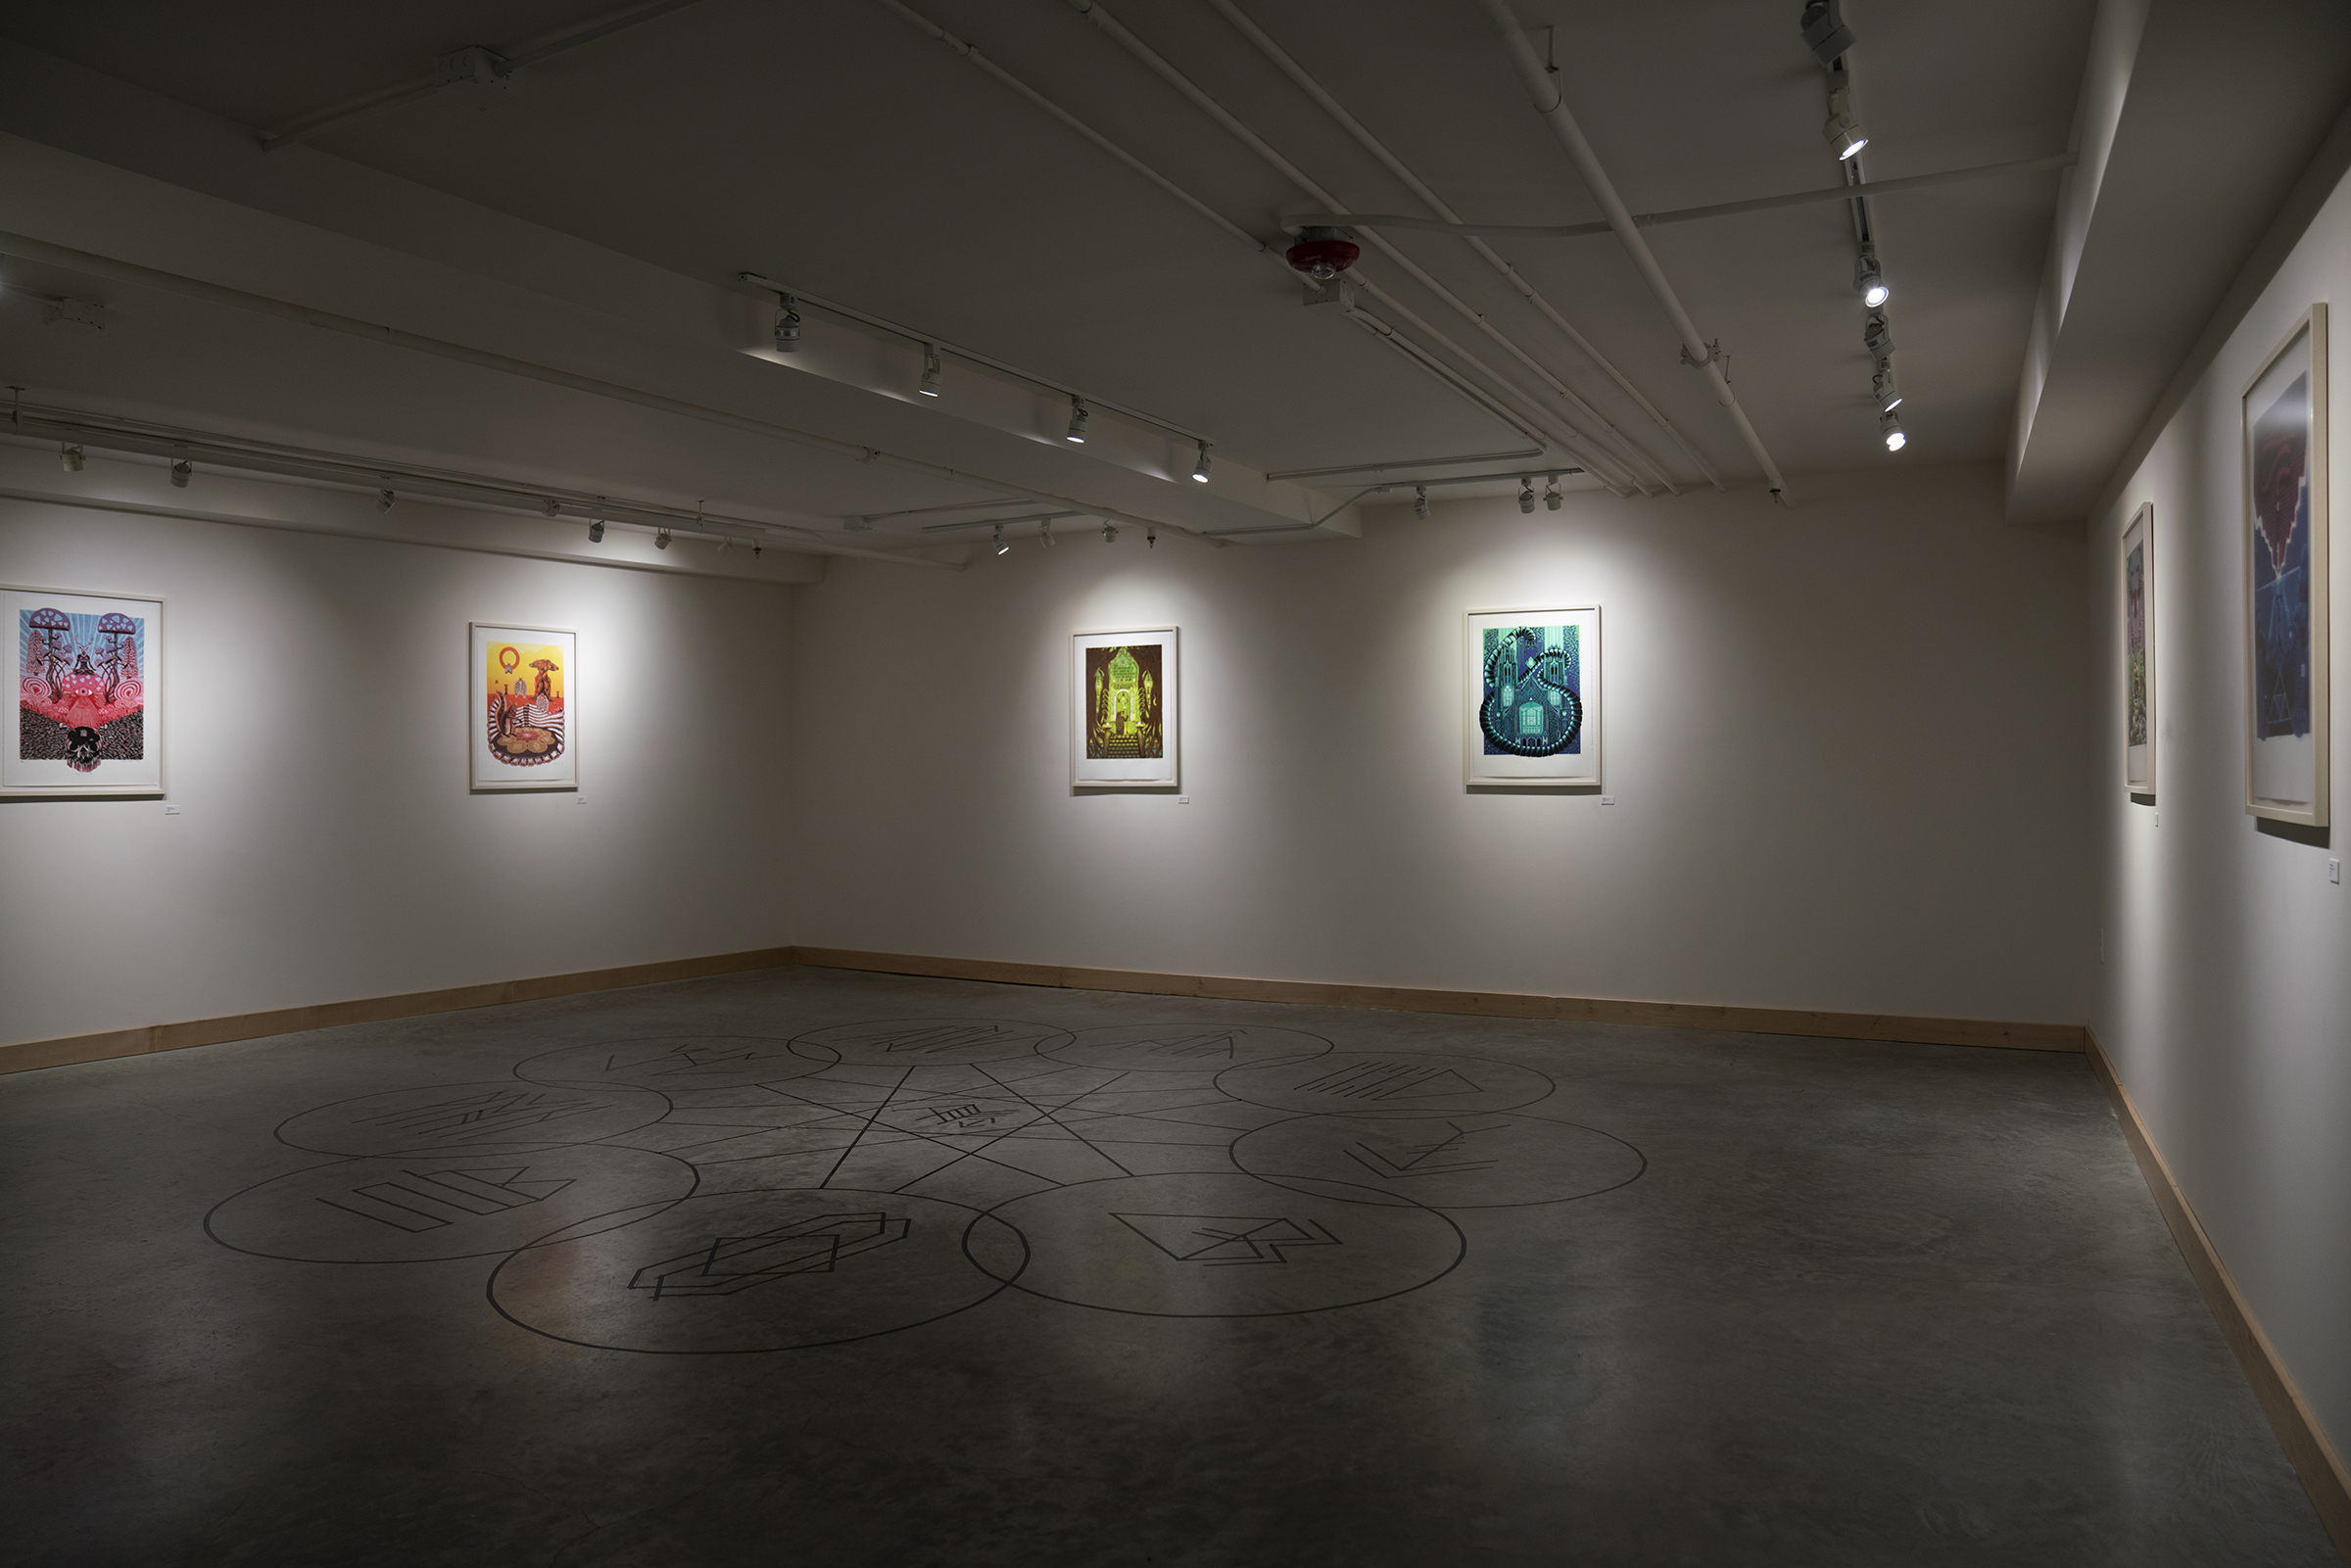 Installation view of The Hallowed Veil Master of Fine Arts Exhibition by Jonathan Byxbe at the Apex Gallery, Tandem Press, University of Wisconsin-Madison.